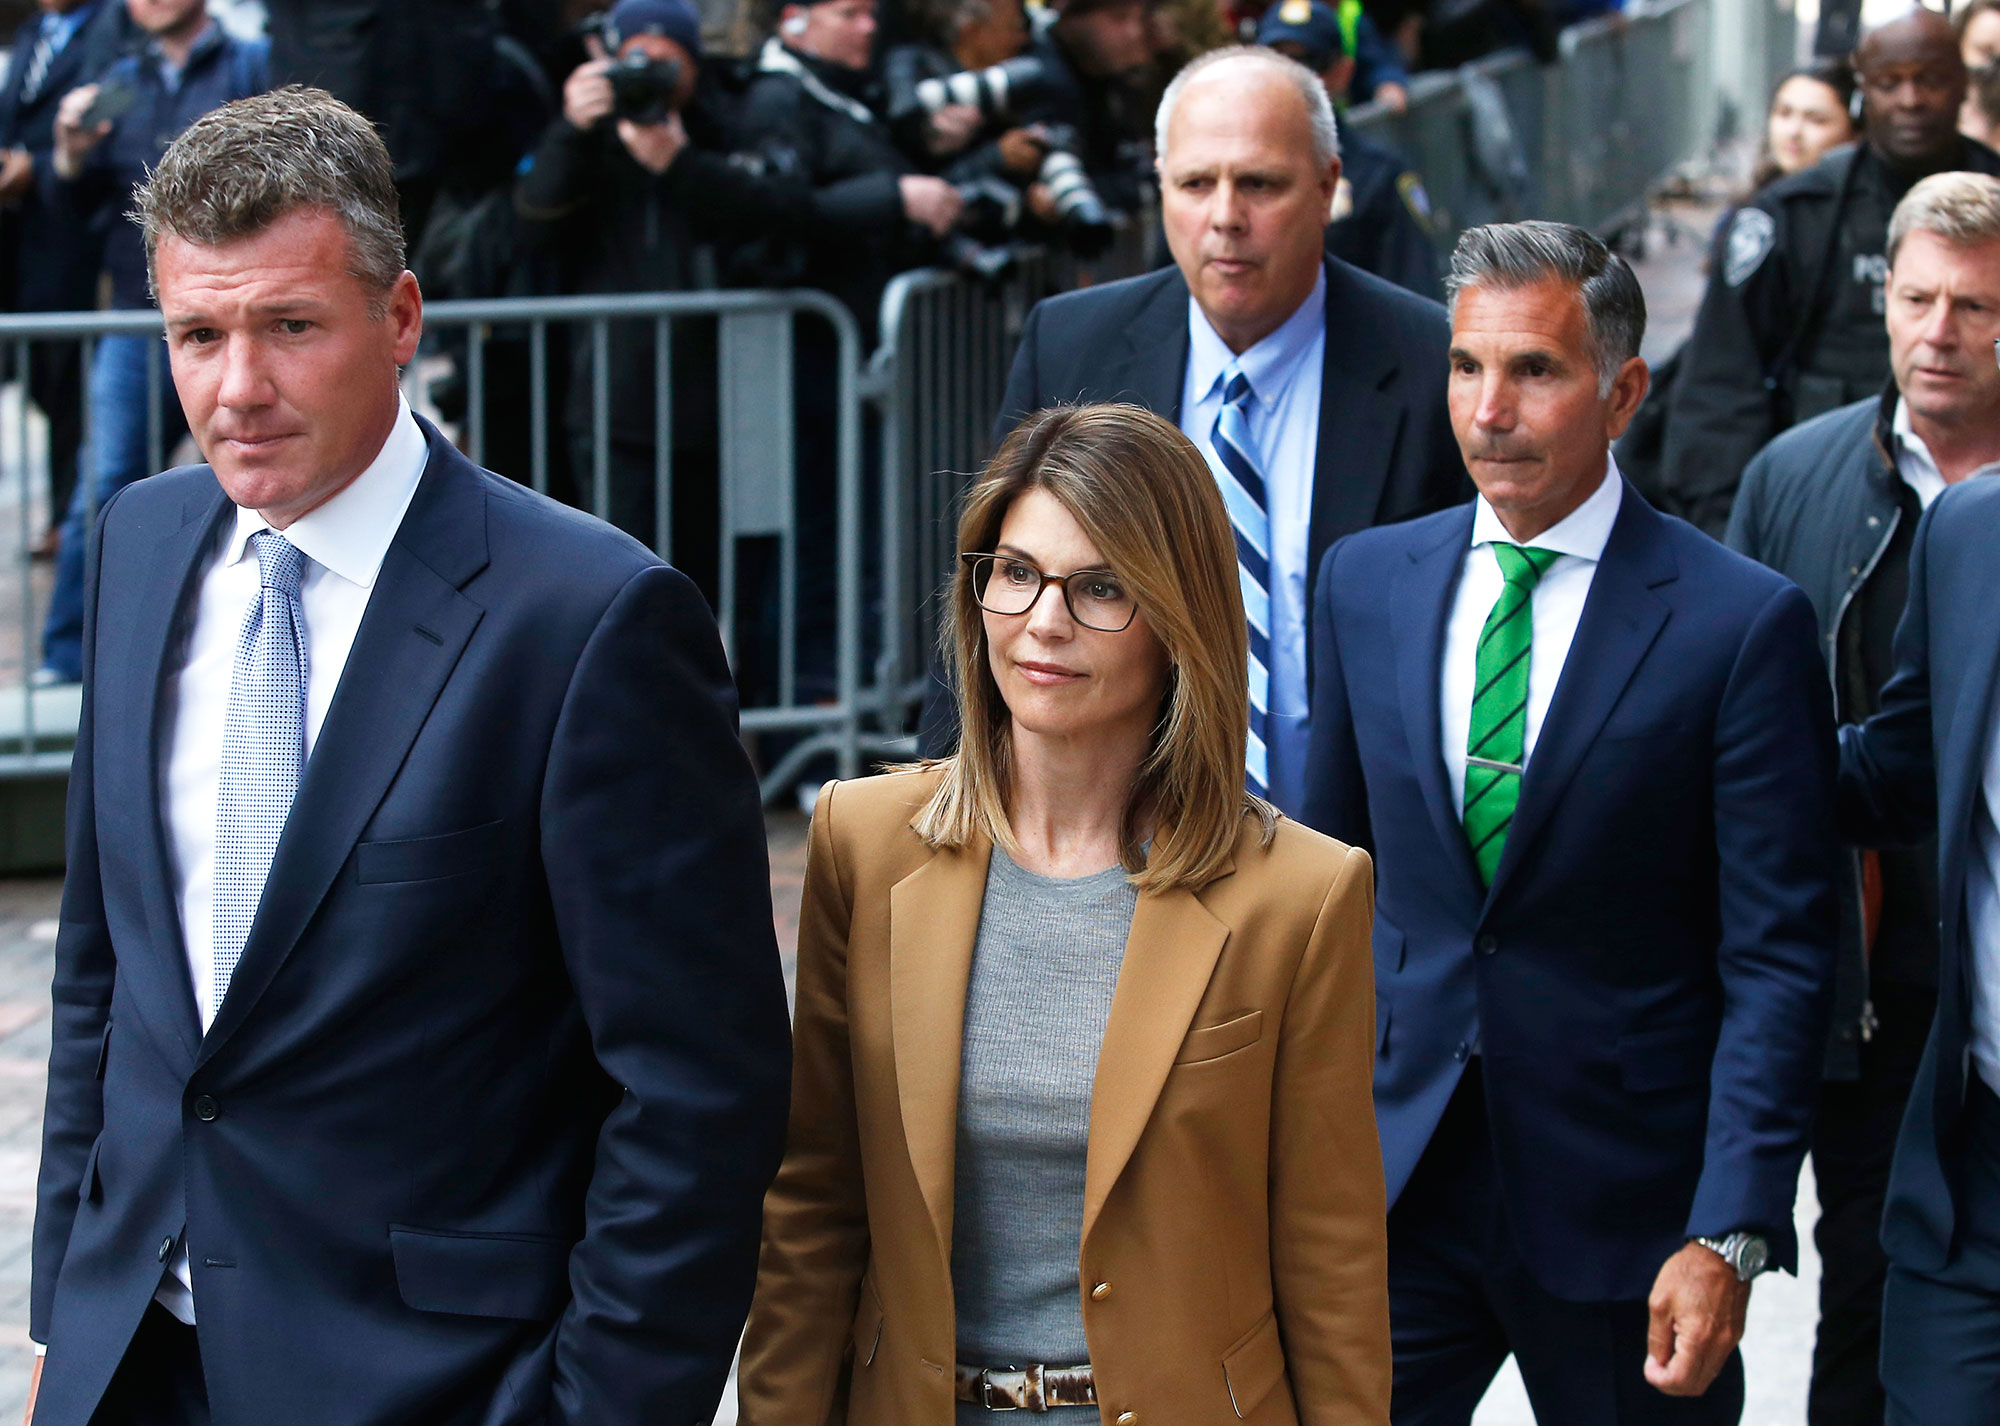 Lori Loughlin and Mossimo Giannulli Everything We Know About Felicity, Lori's Court Case